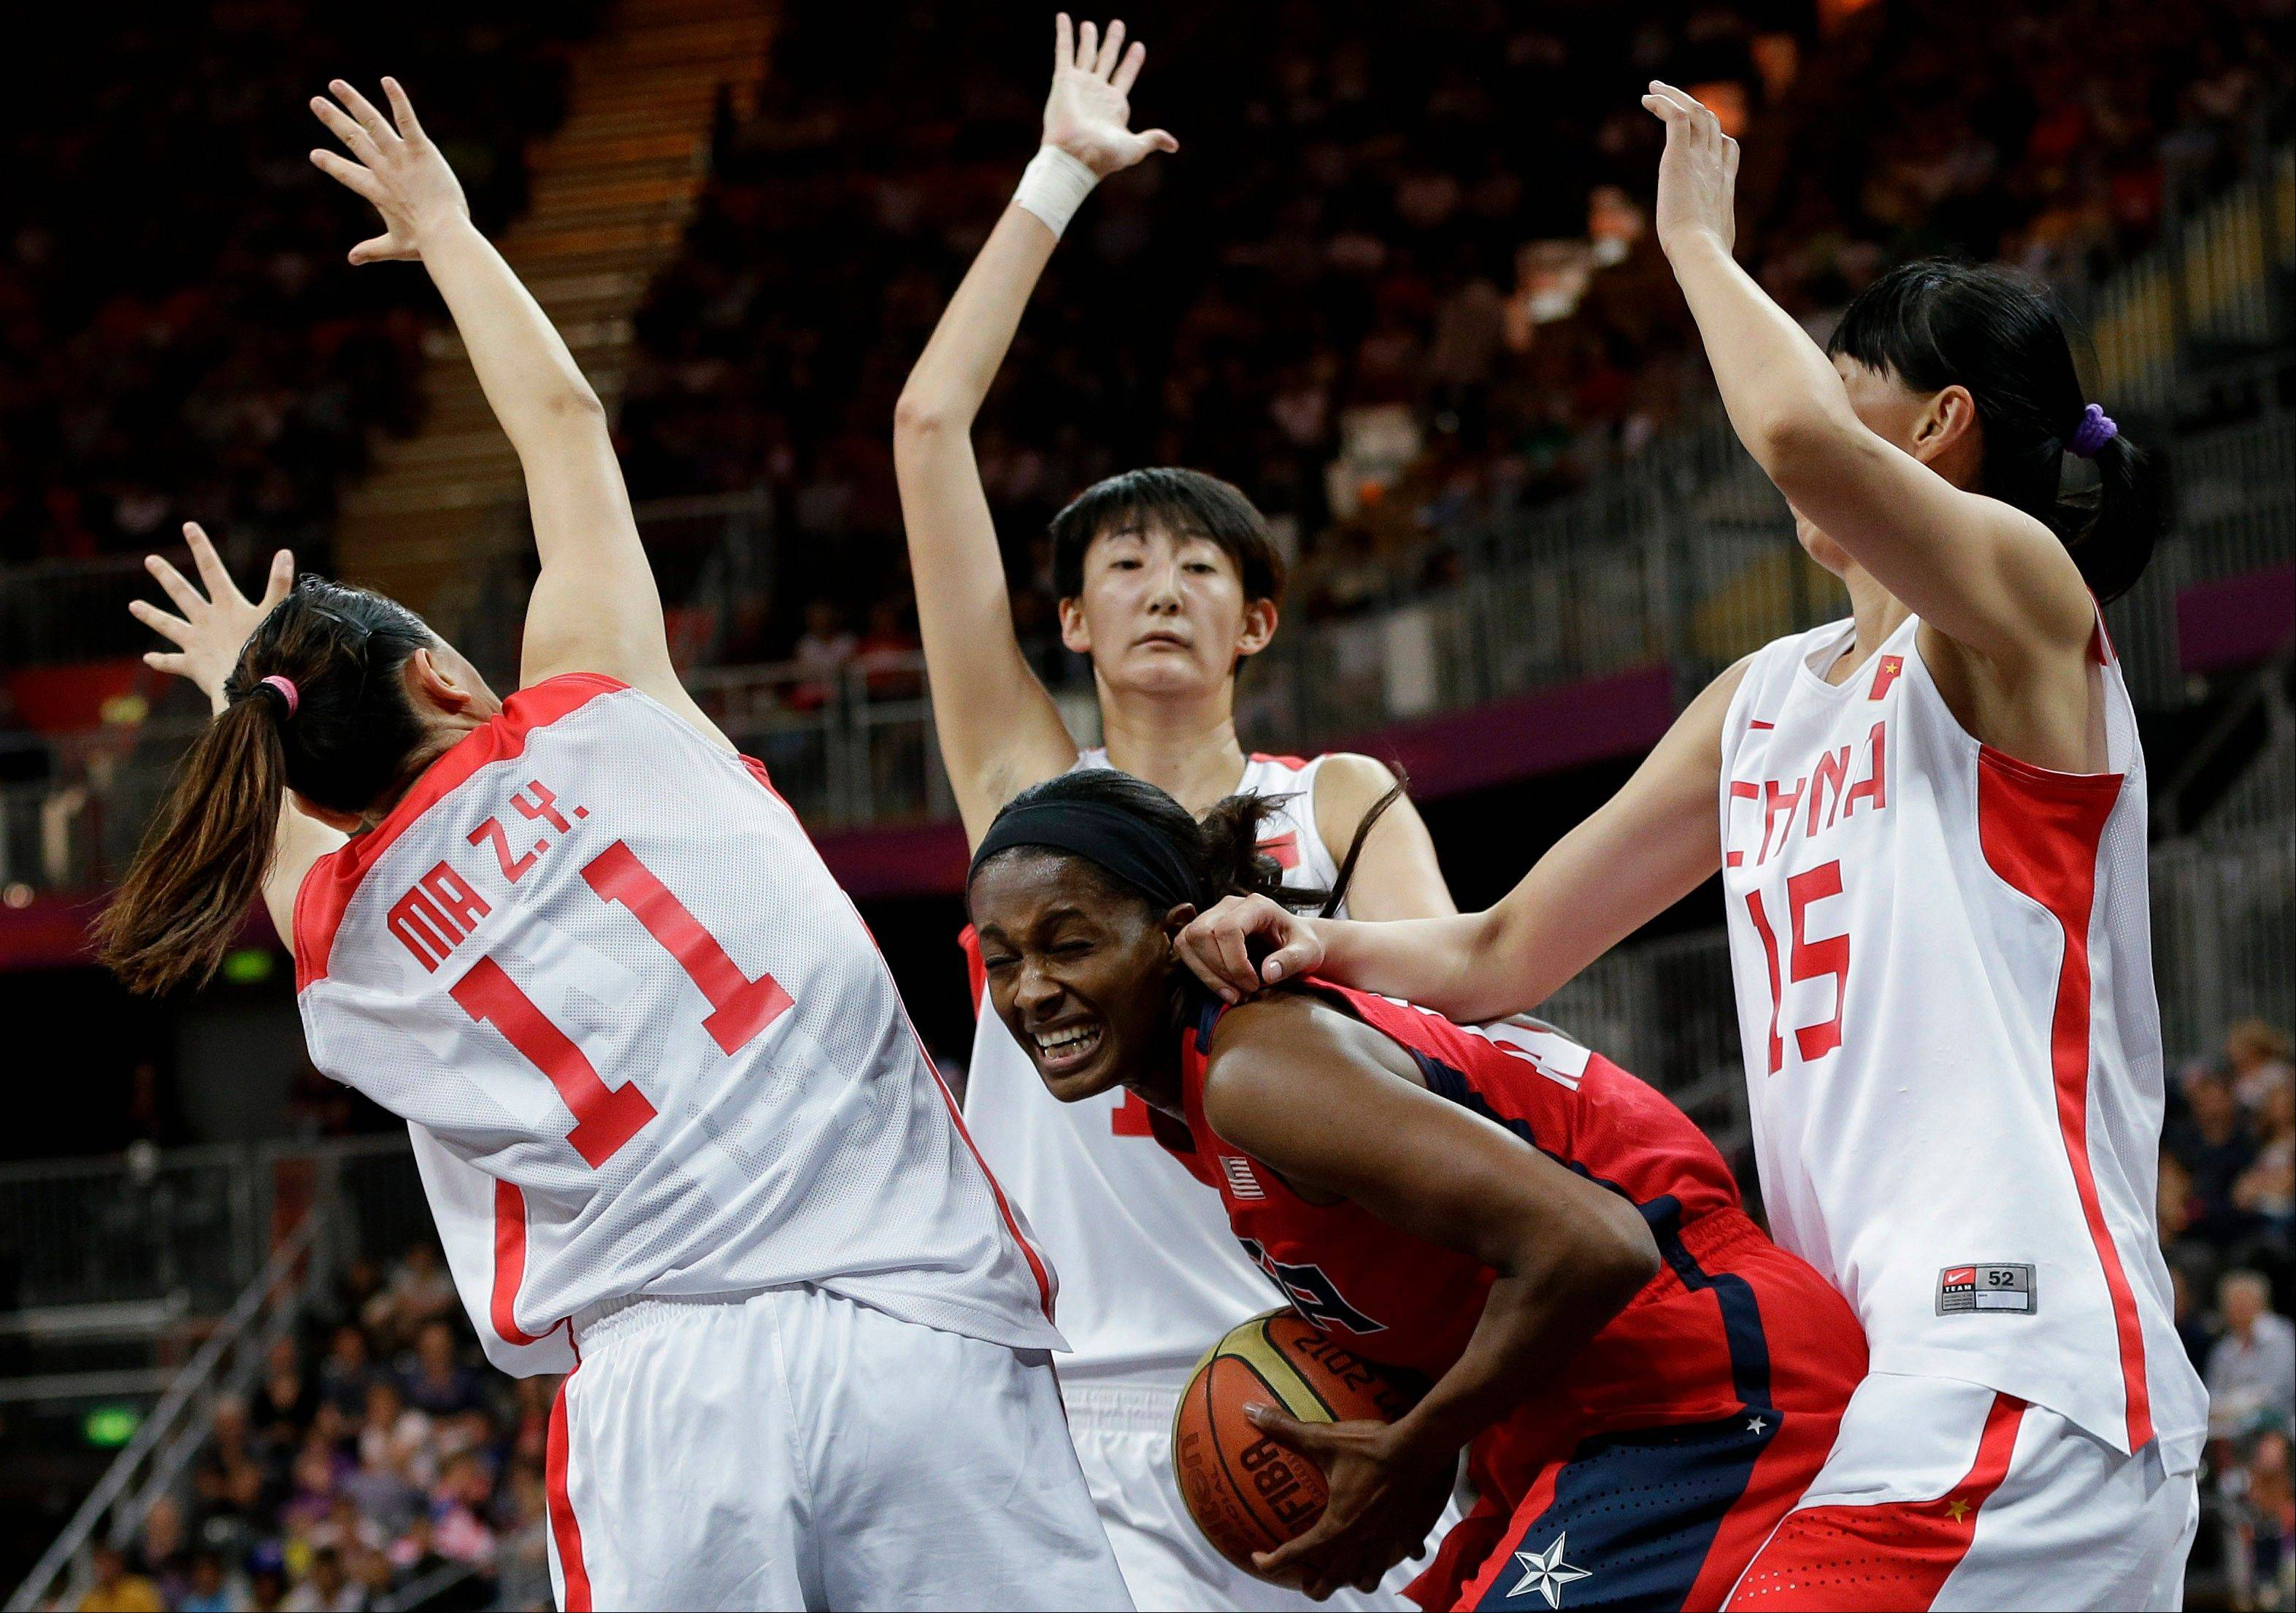 USA's Swin Cash, center, is surrounded by China defenders, Ma Zengyu (11), Wei Wei, center back, and Chen Nan (15) during a preliminary women's basketball game at the 2012 Summer Olympics, Sunday, Aug. 5, 2012, in London.